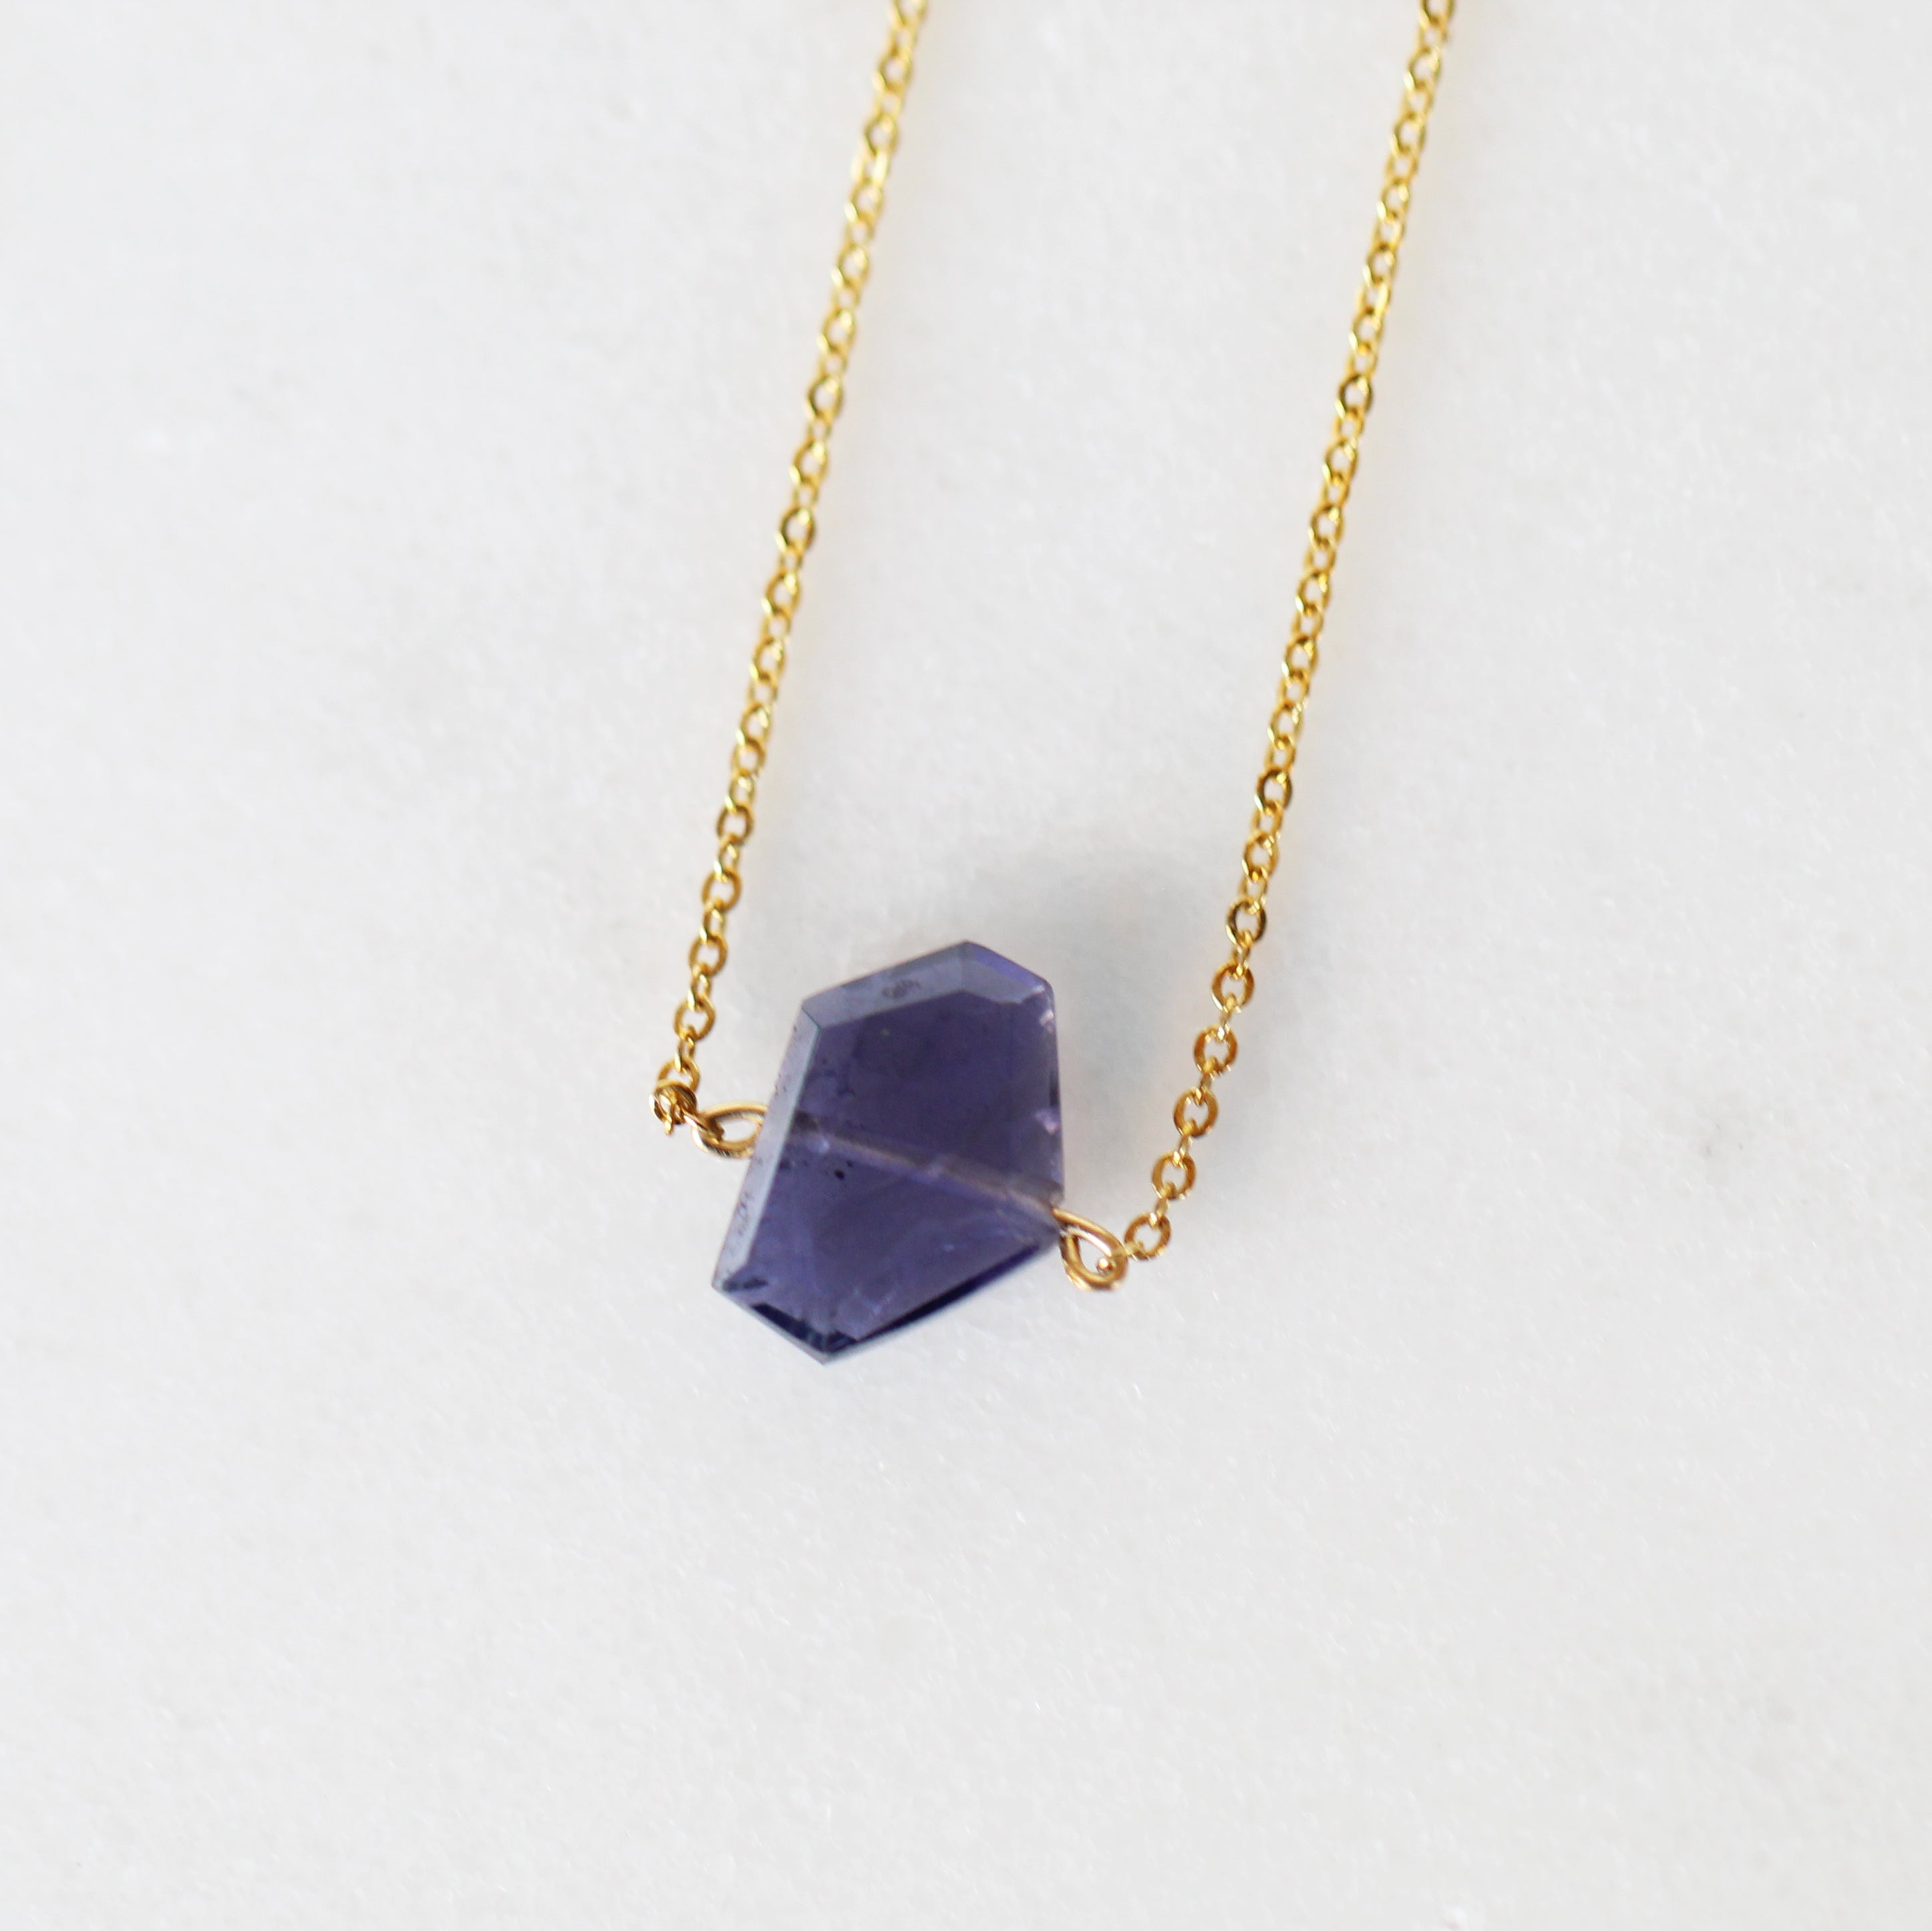 Iolite Pendant Necklace with 14k Yellow Gold Fill Chain - Salt & Pepper Celestial Diamond Engagement Rings and Wedding Bands  by Midwinter Co.